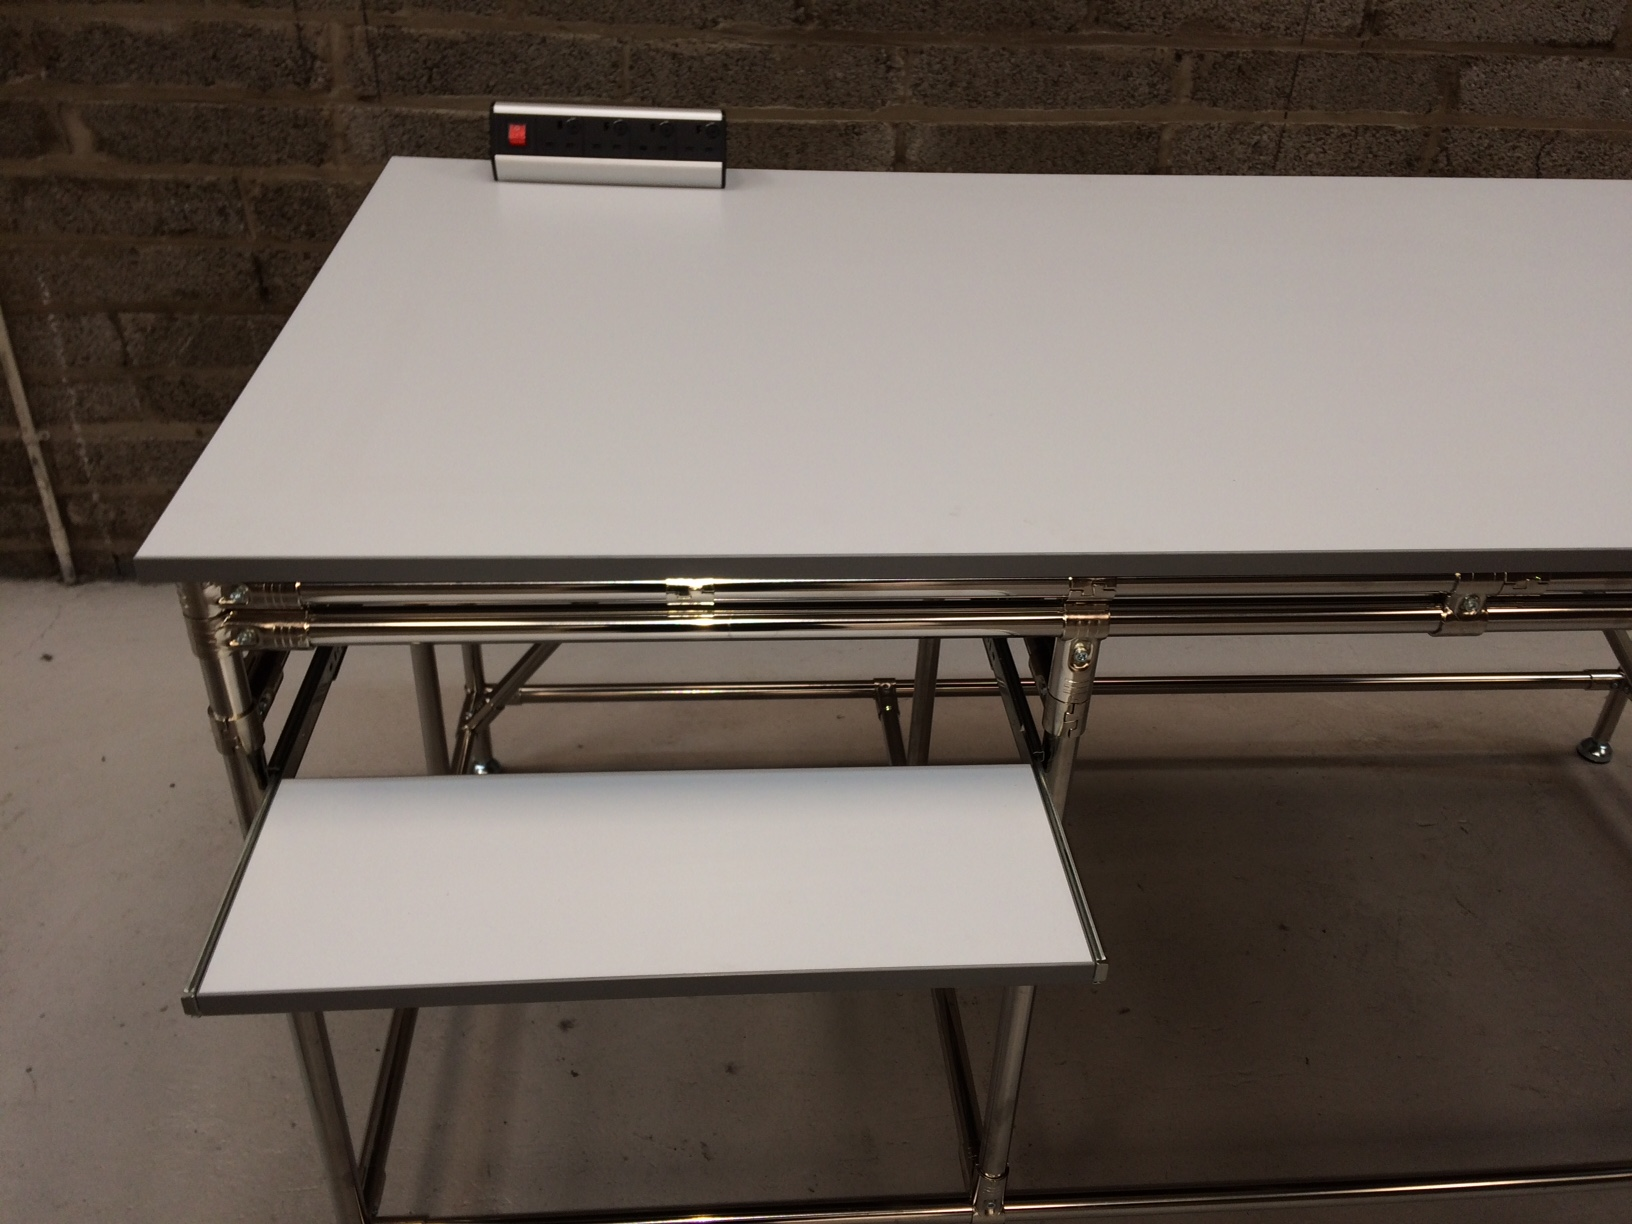 Stainless Steel Frame Industrial Workstations Texam Ltd Uk